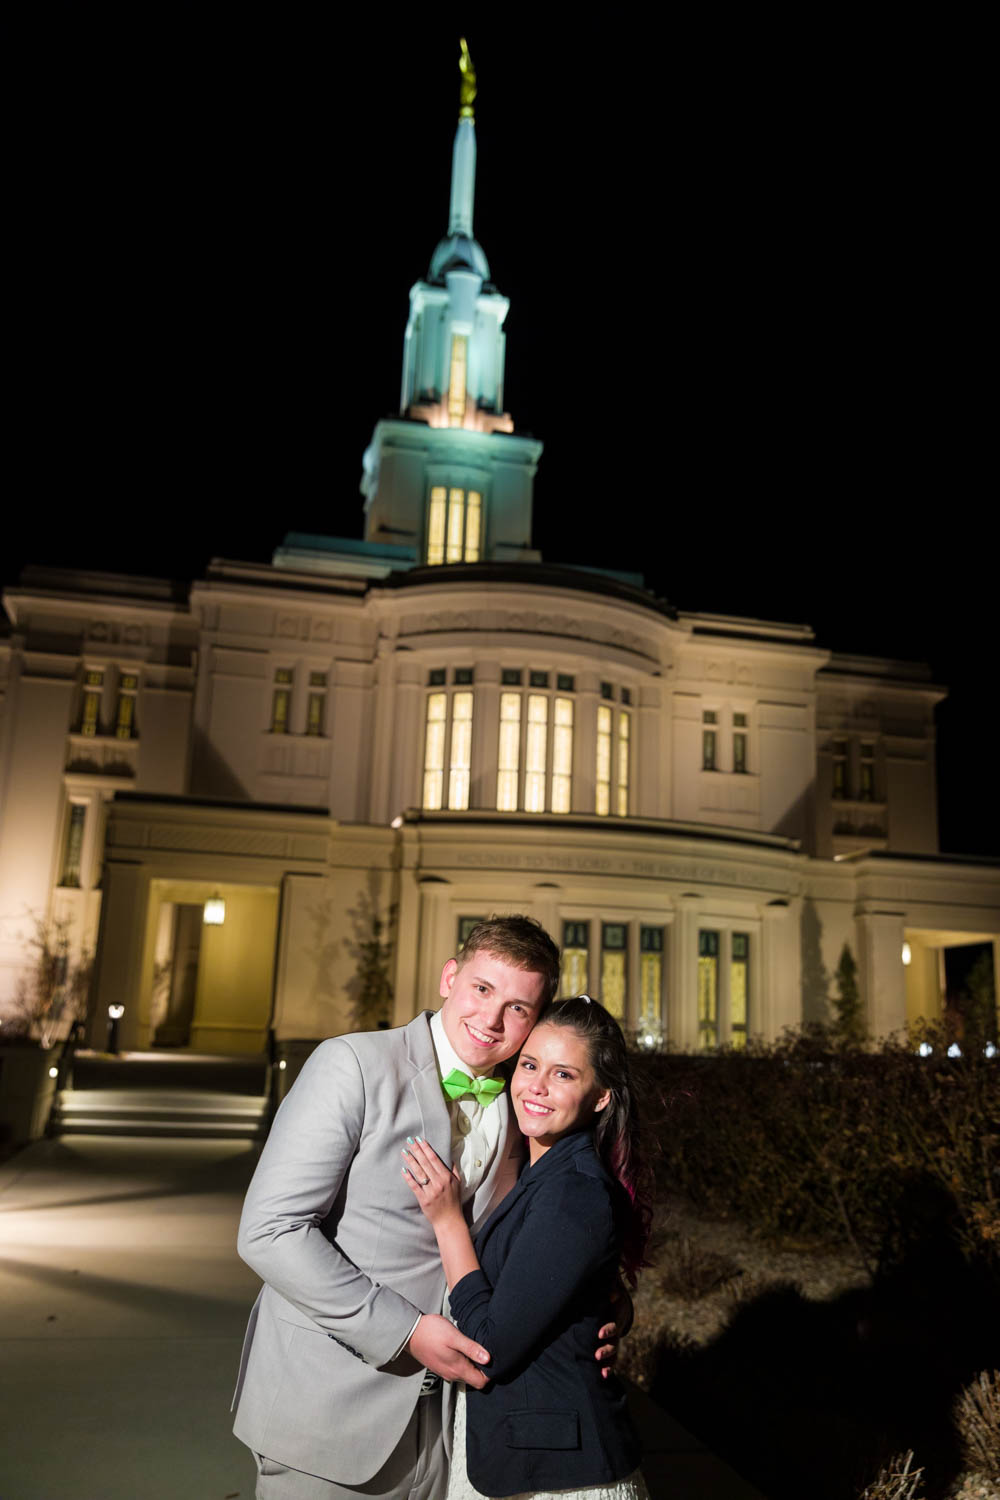 Josh and Andrea outside the Payson Temple